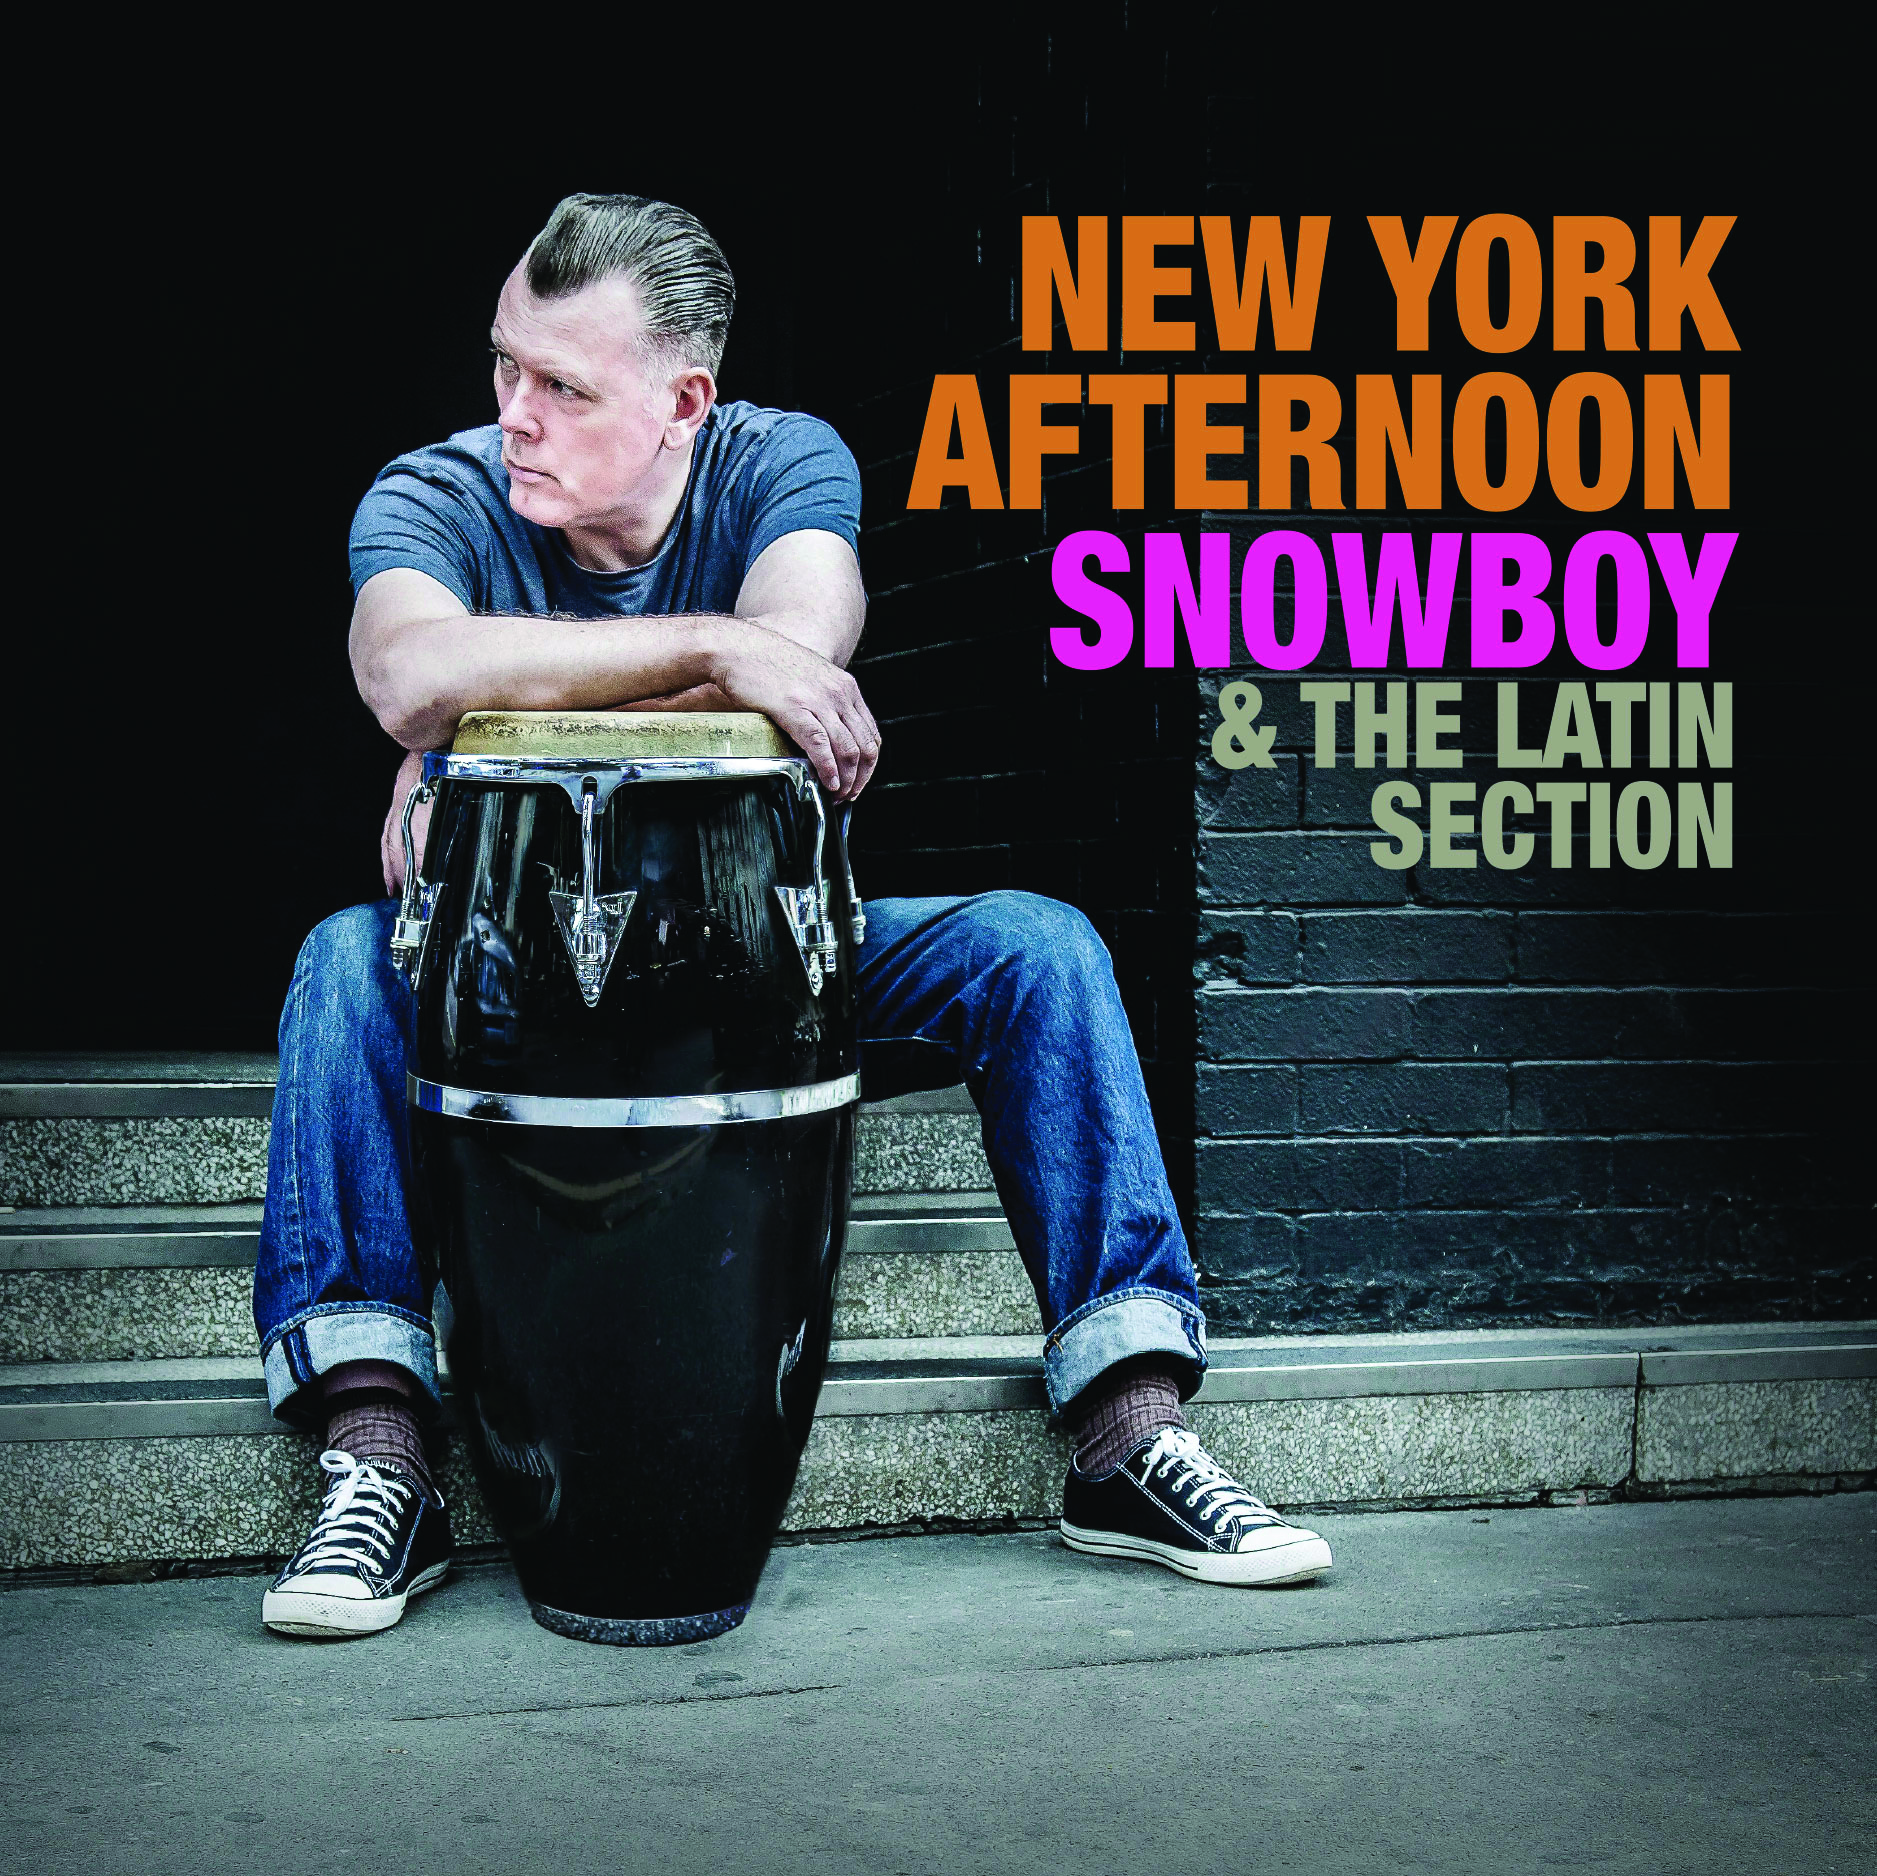 Snowboy & the Latin Section - New York Afternoon Cover